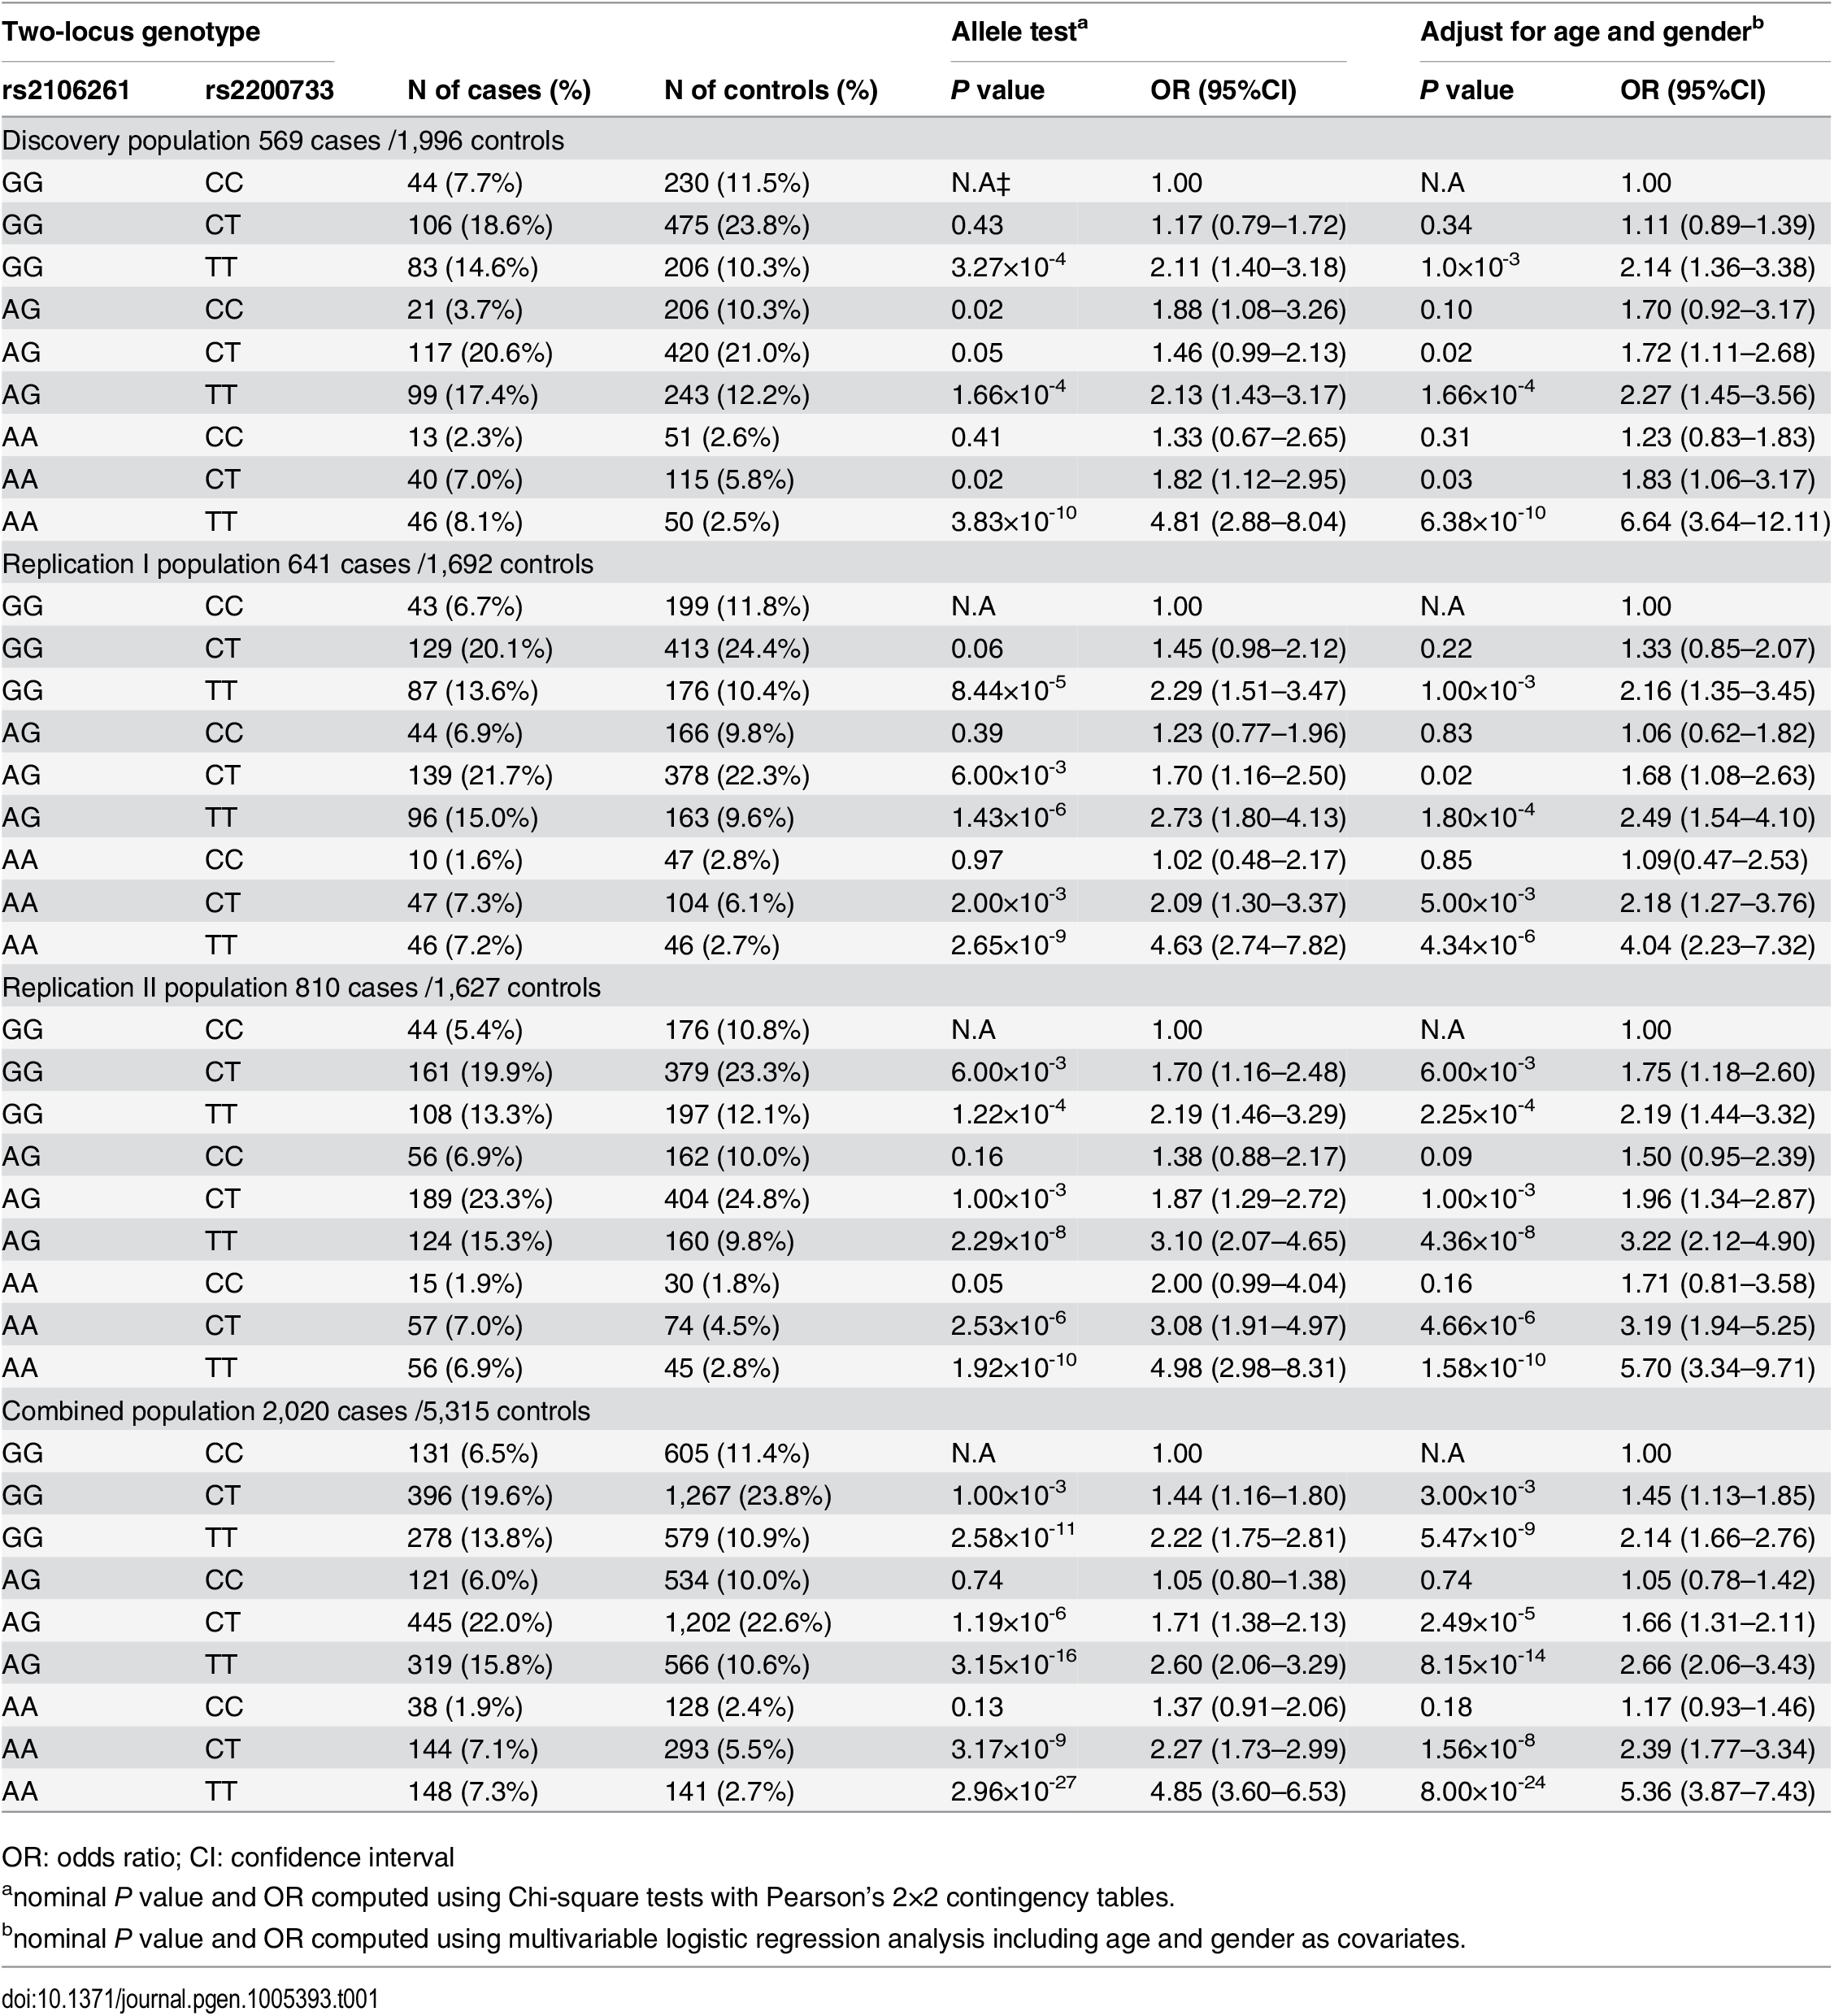 ORs for 8 two-locus genotypes versus non-risk homozygous genotype GGCC as a reference for SNPs rs2200733 and rs2106261 in the Chinese Han populations.